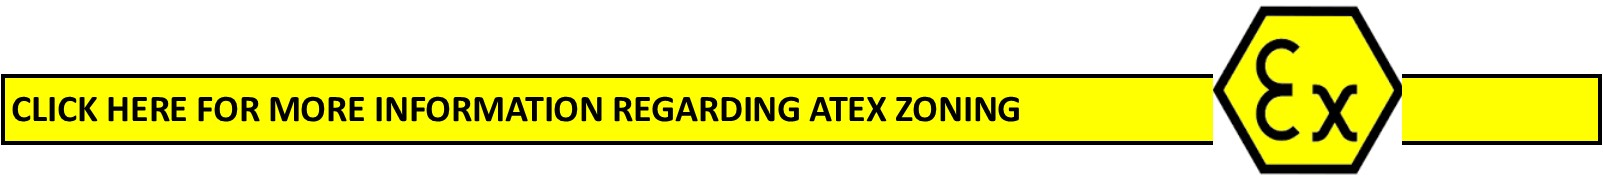 atex actuated valves